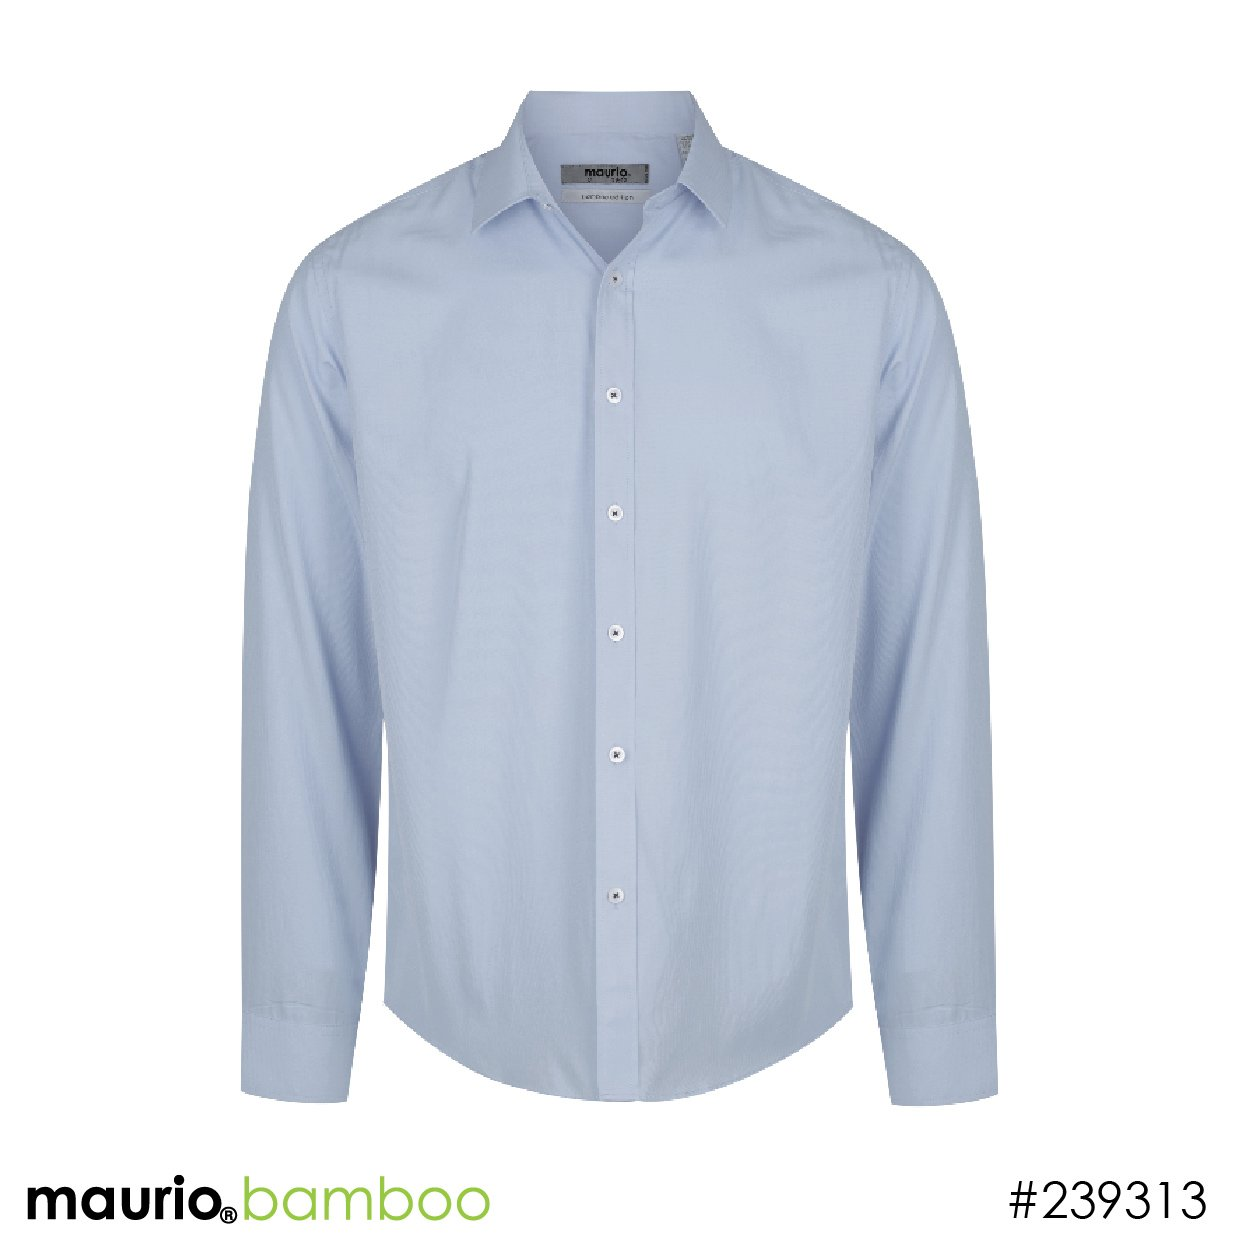 Dress shirt bamboo fabric - silver